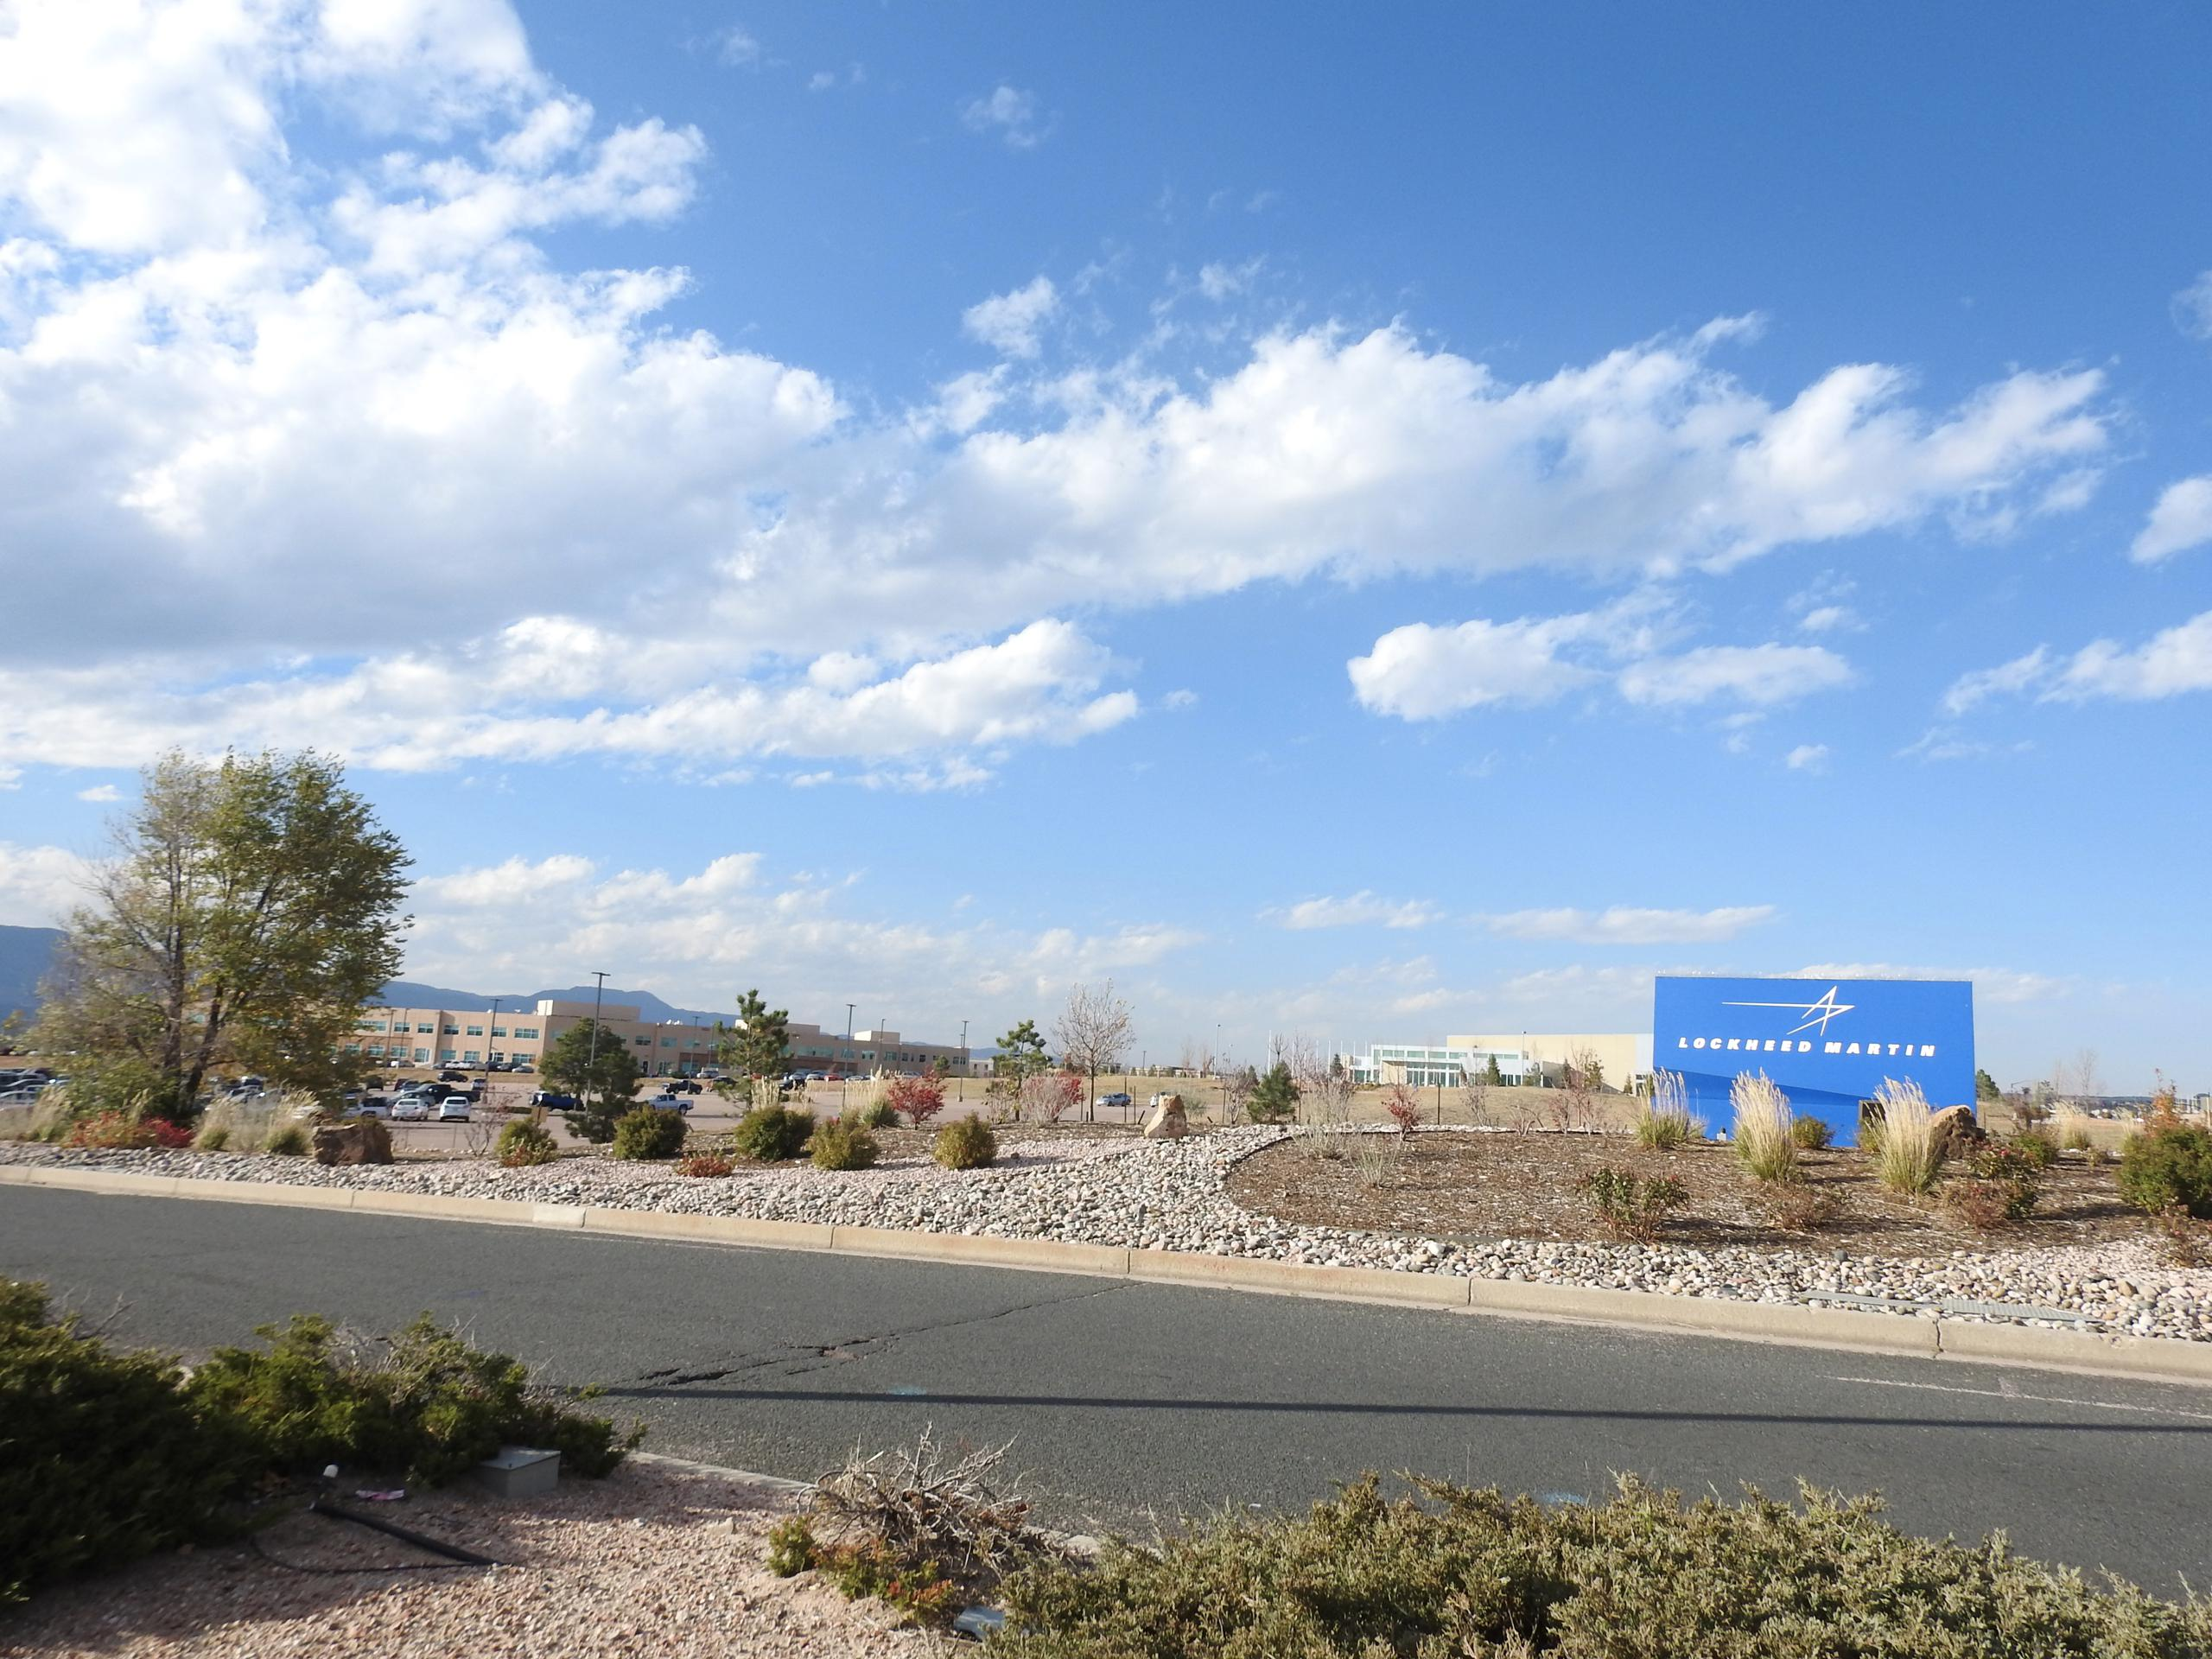 Lockheed Martin campus in Colorado Springs, Colorado.